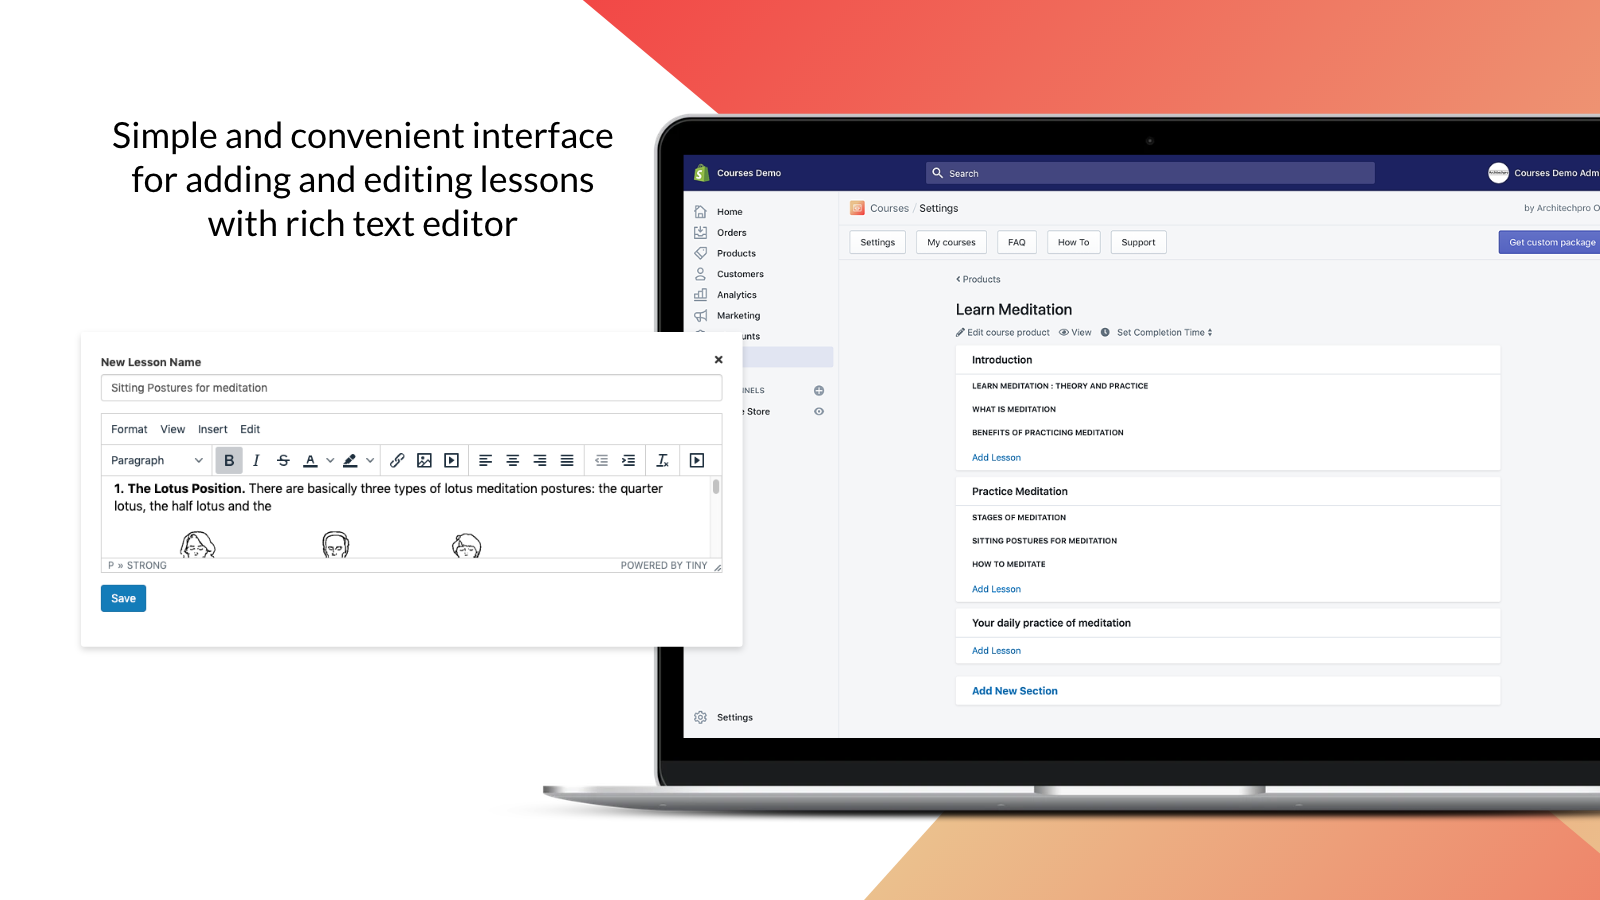 Shopify Courses –edit lessons and group them under sections